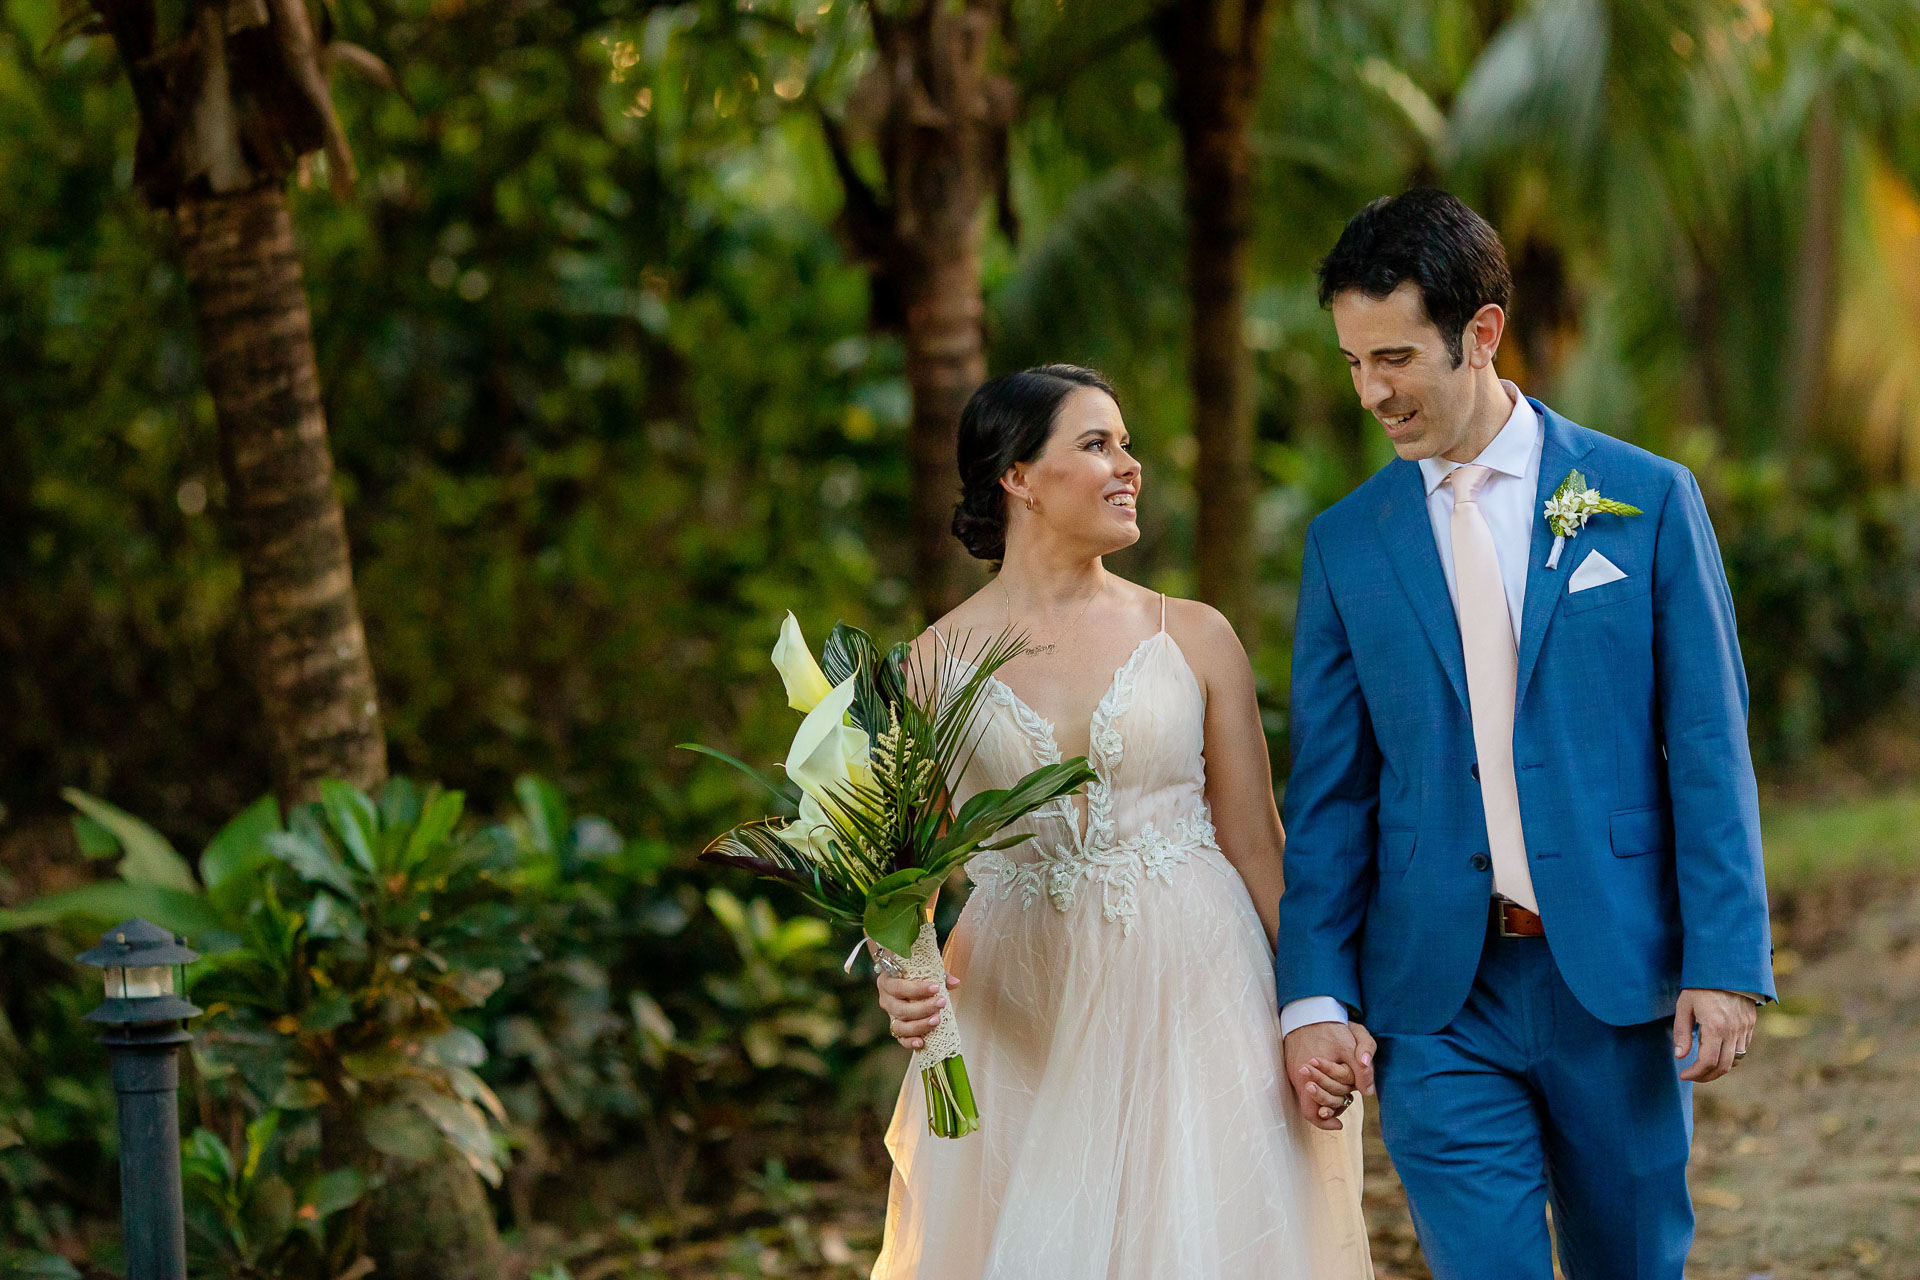 Wedding Elopement Couple Portrait from Costa Rica   bride and groom taking a walk